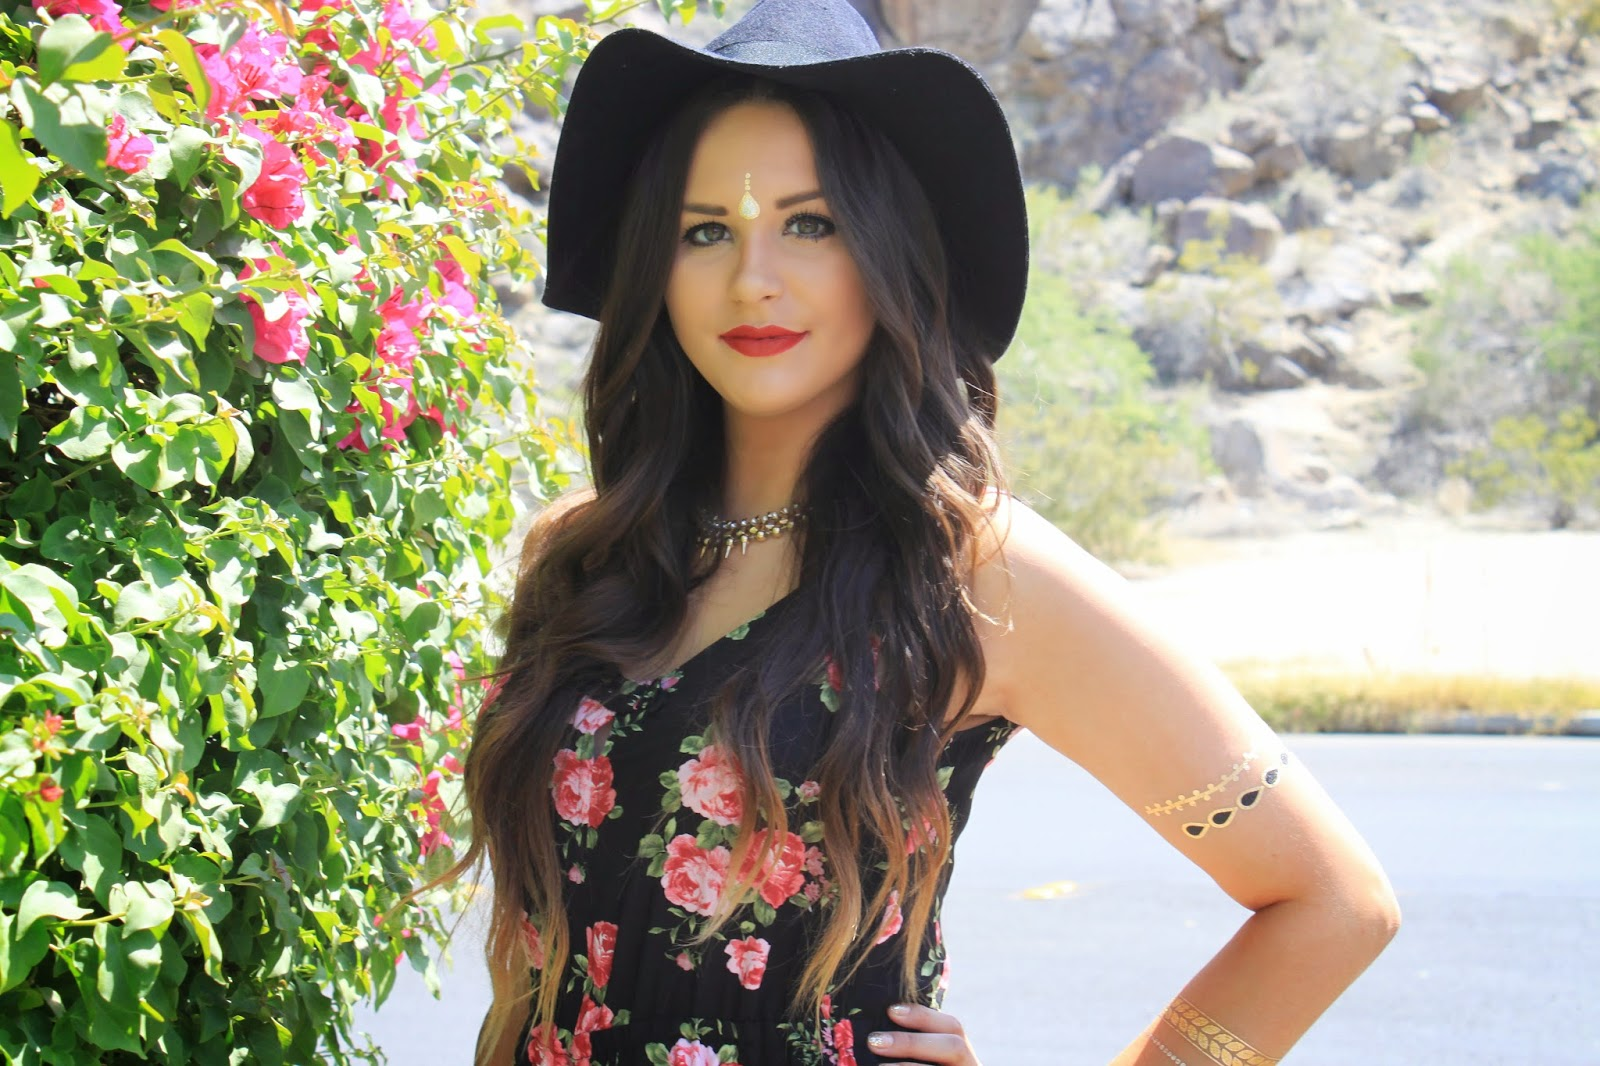 Fashion blogger Mash Elle shares the perfect outfit for Coachella - What to Wear to Coachella by popular Orlando fashion blogger, Mash Elle